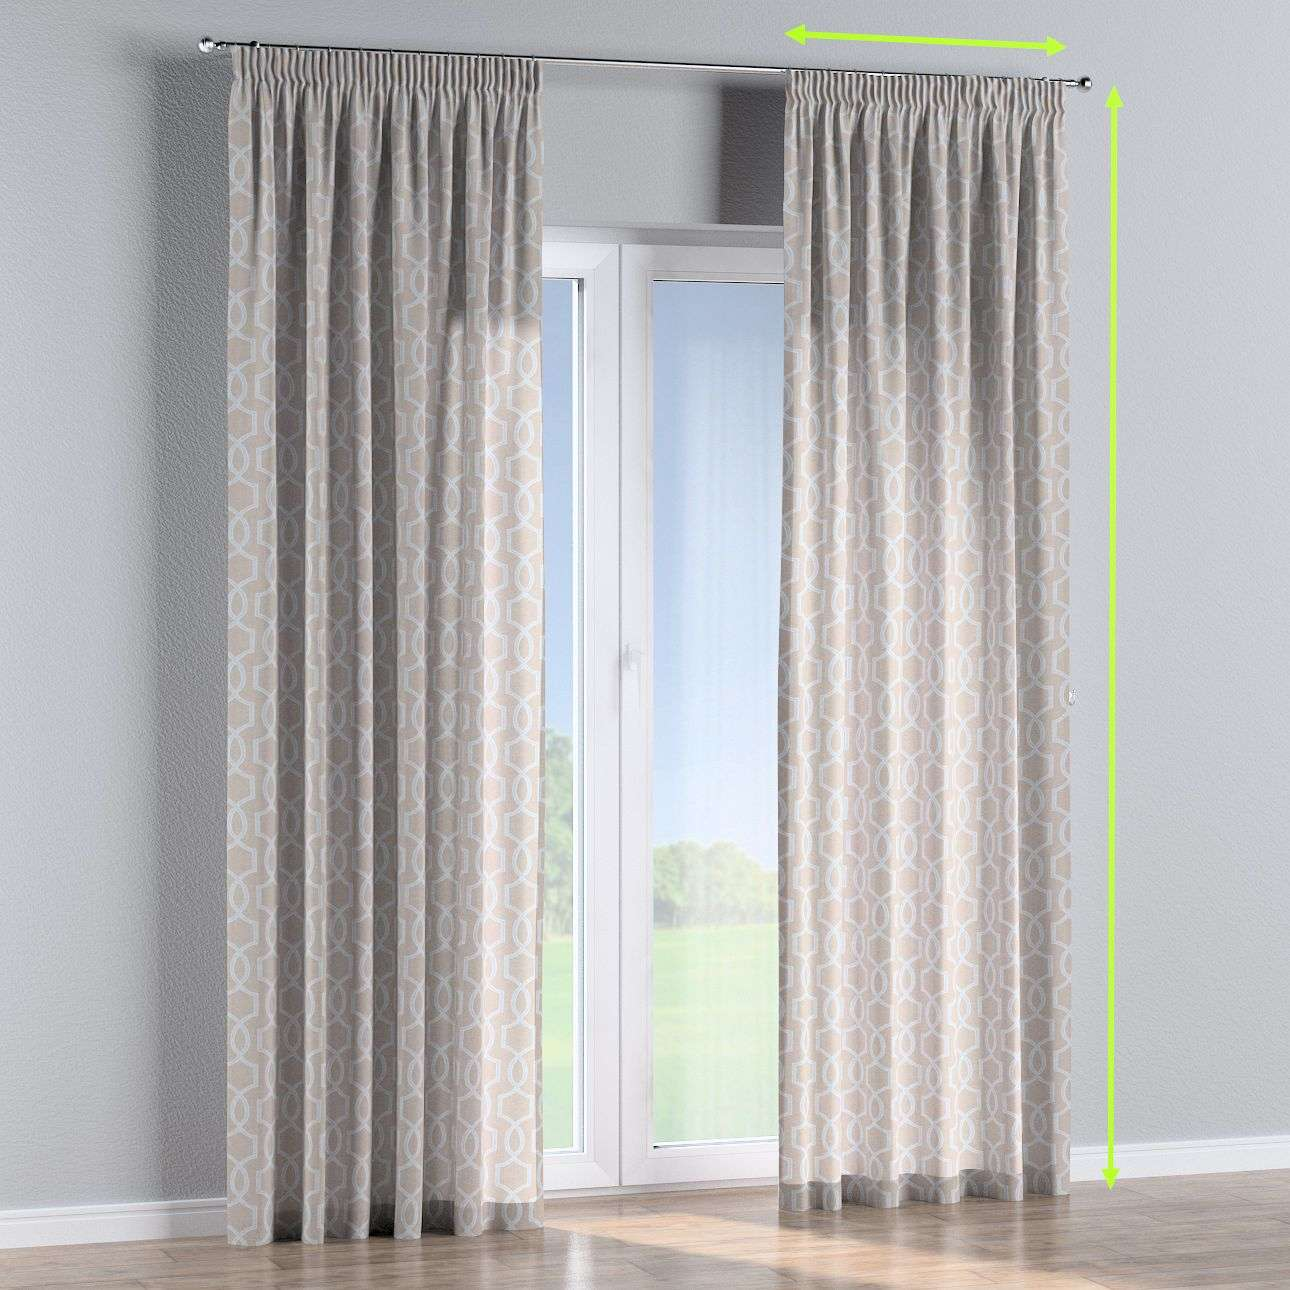 Pencil pleat curtains in collection Comics/Geometrical, fabric: 141-26